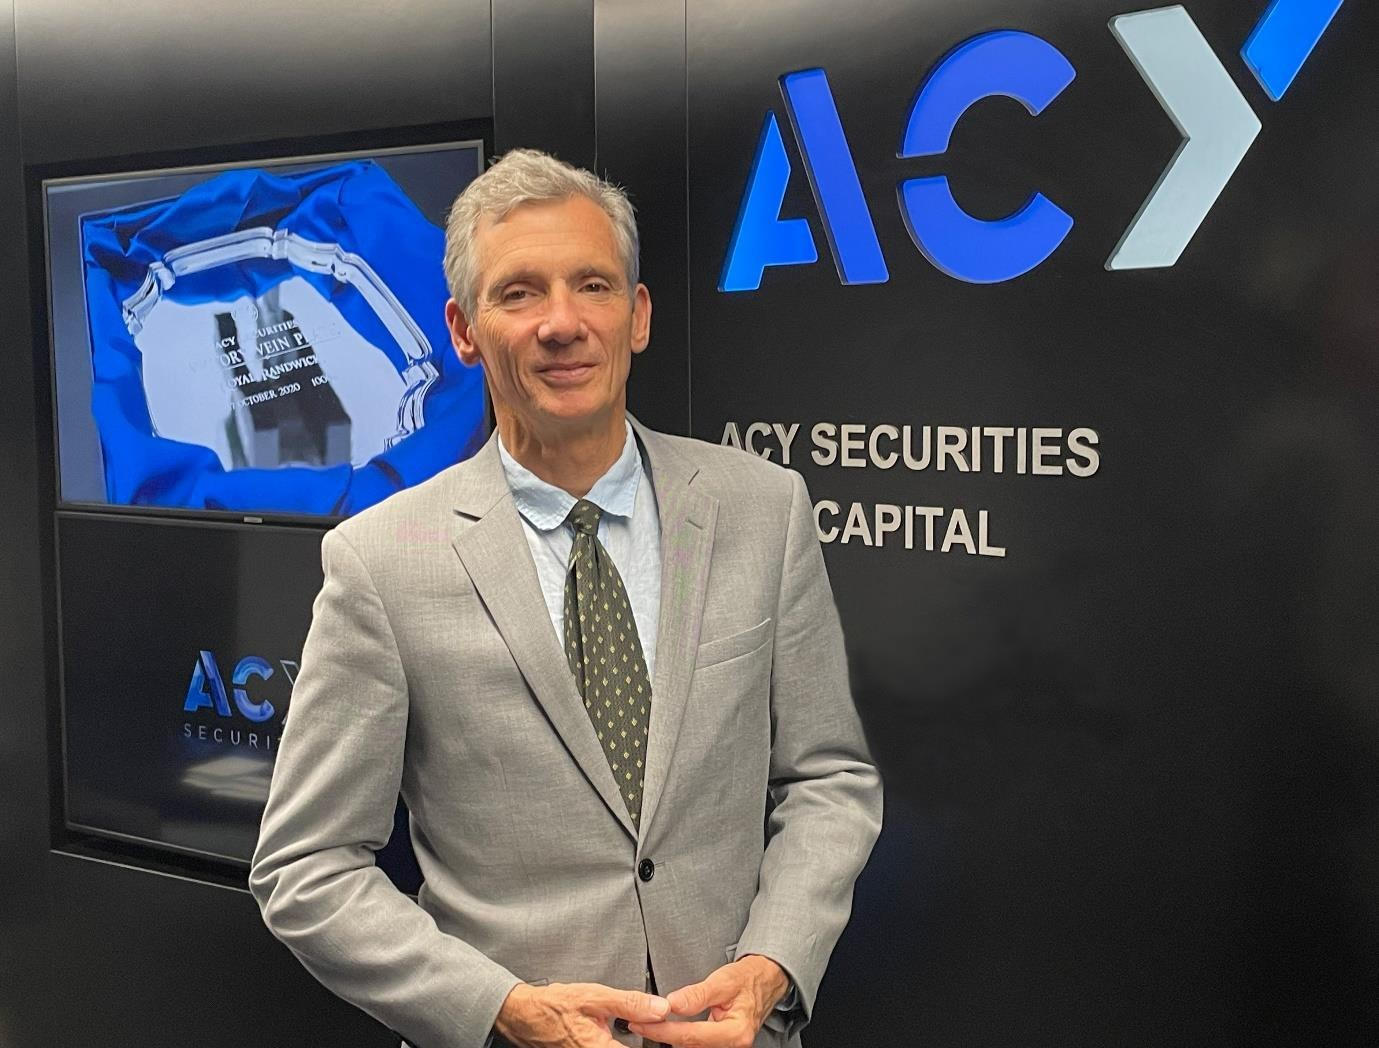 """ACY Securities appoints """"World's most accurate currency forecaster"""" and former BNP Paribas and Macquarie Bank superstar Clifford Bennett as their new Chief Economist"""